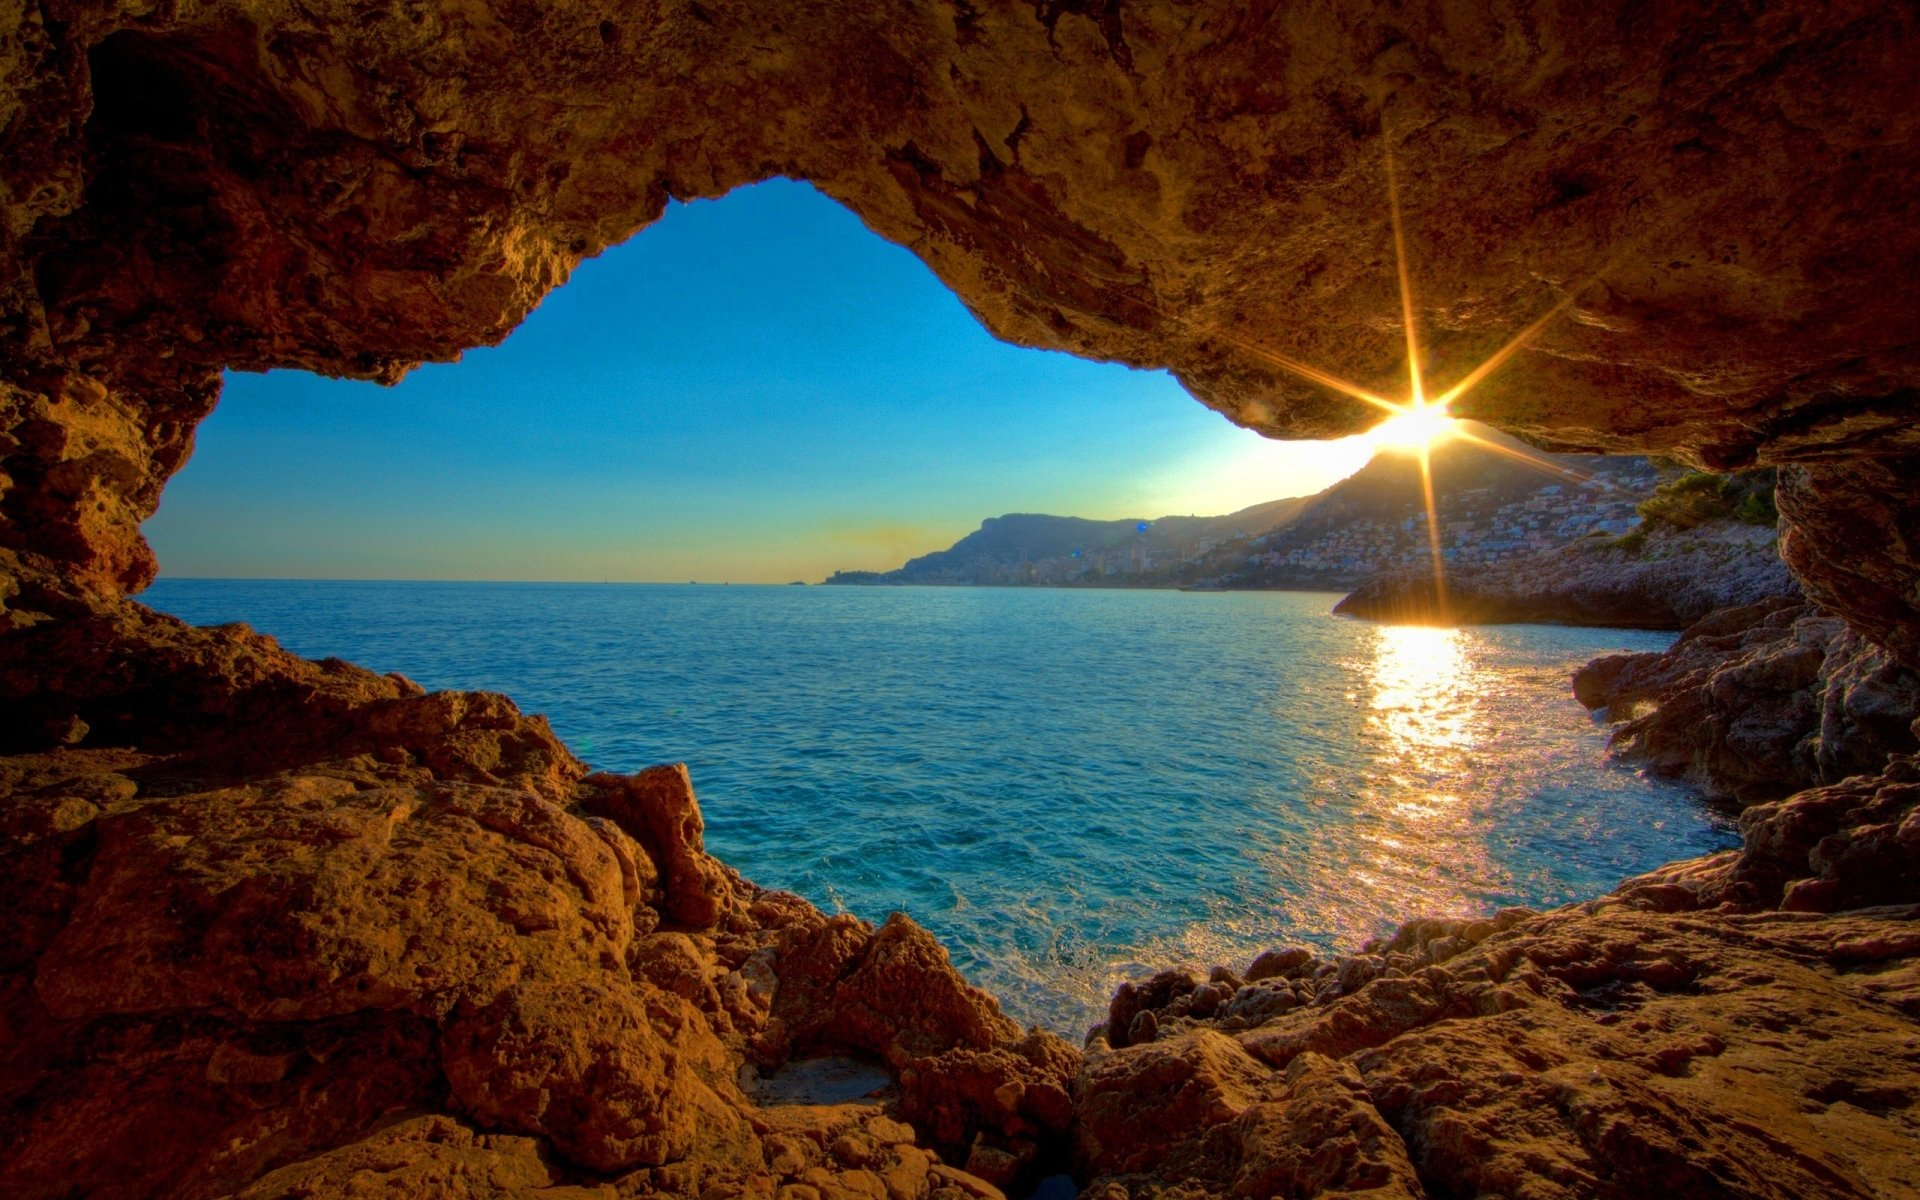 Earth - Ocean  Nature Landscape City Mountain Moon Sun Sunset Sunlight HDR Monaco Wallpaper